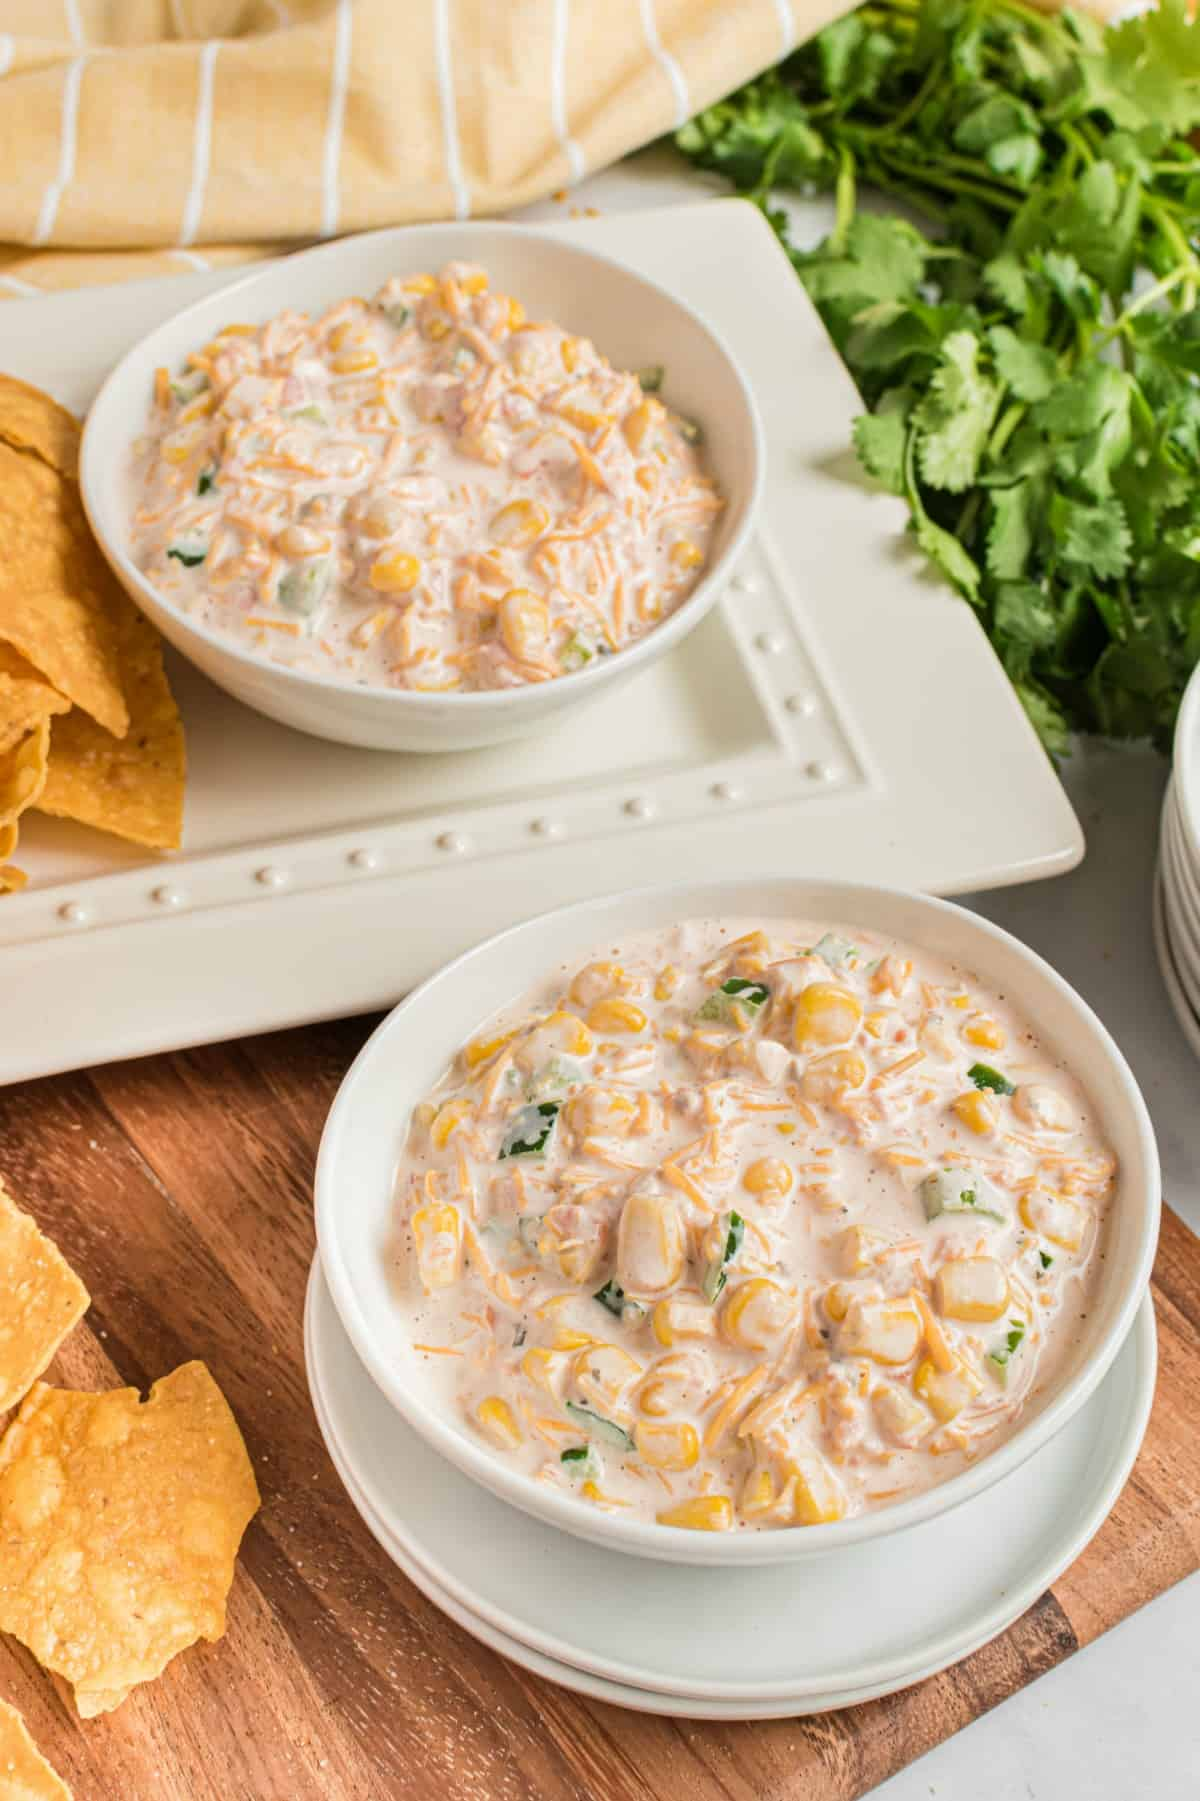 Two white bowls filled with creamy jalapeno corn dip with a side of tortilla chips.